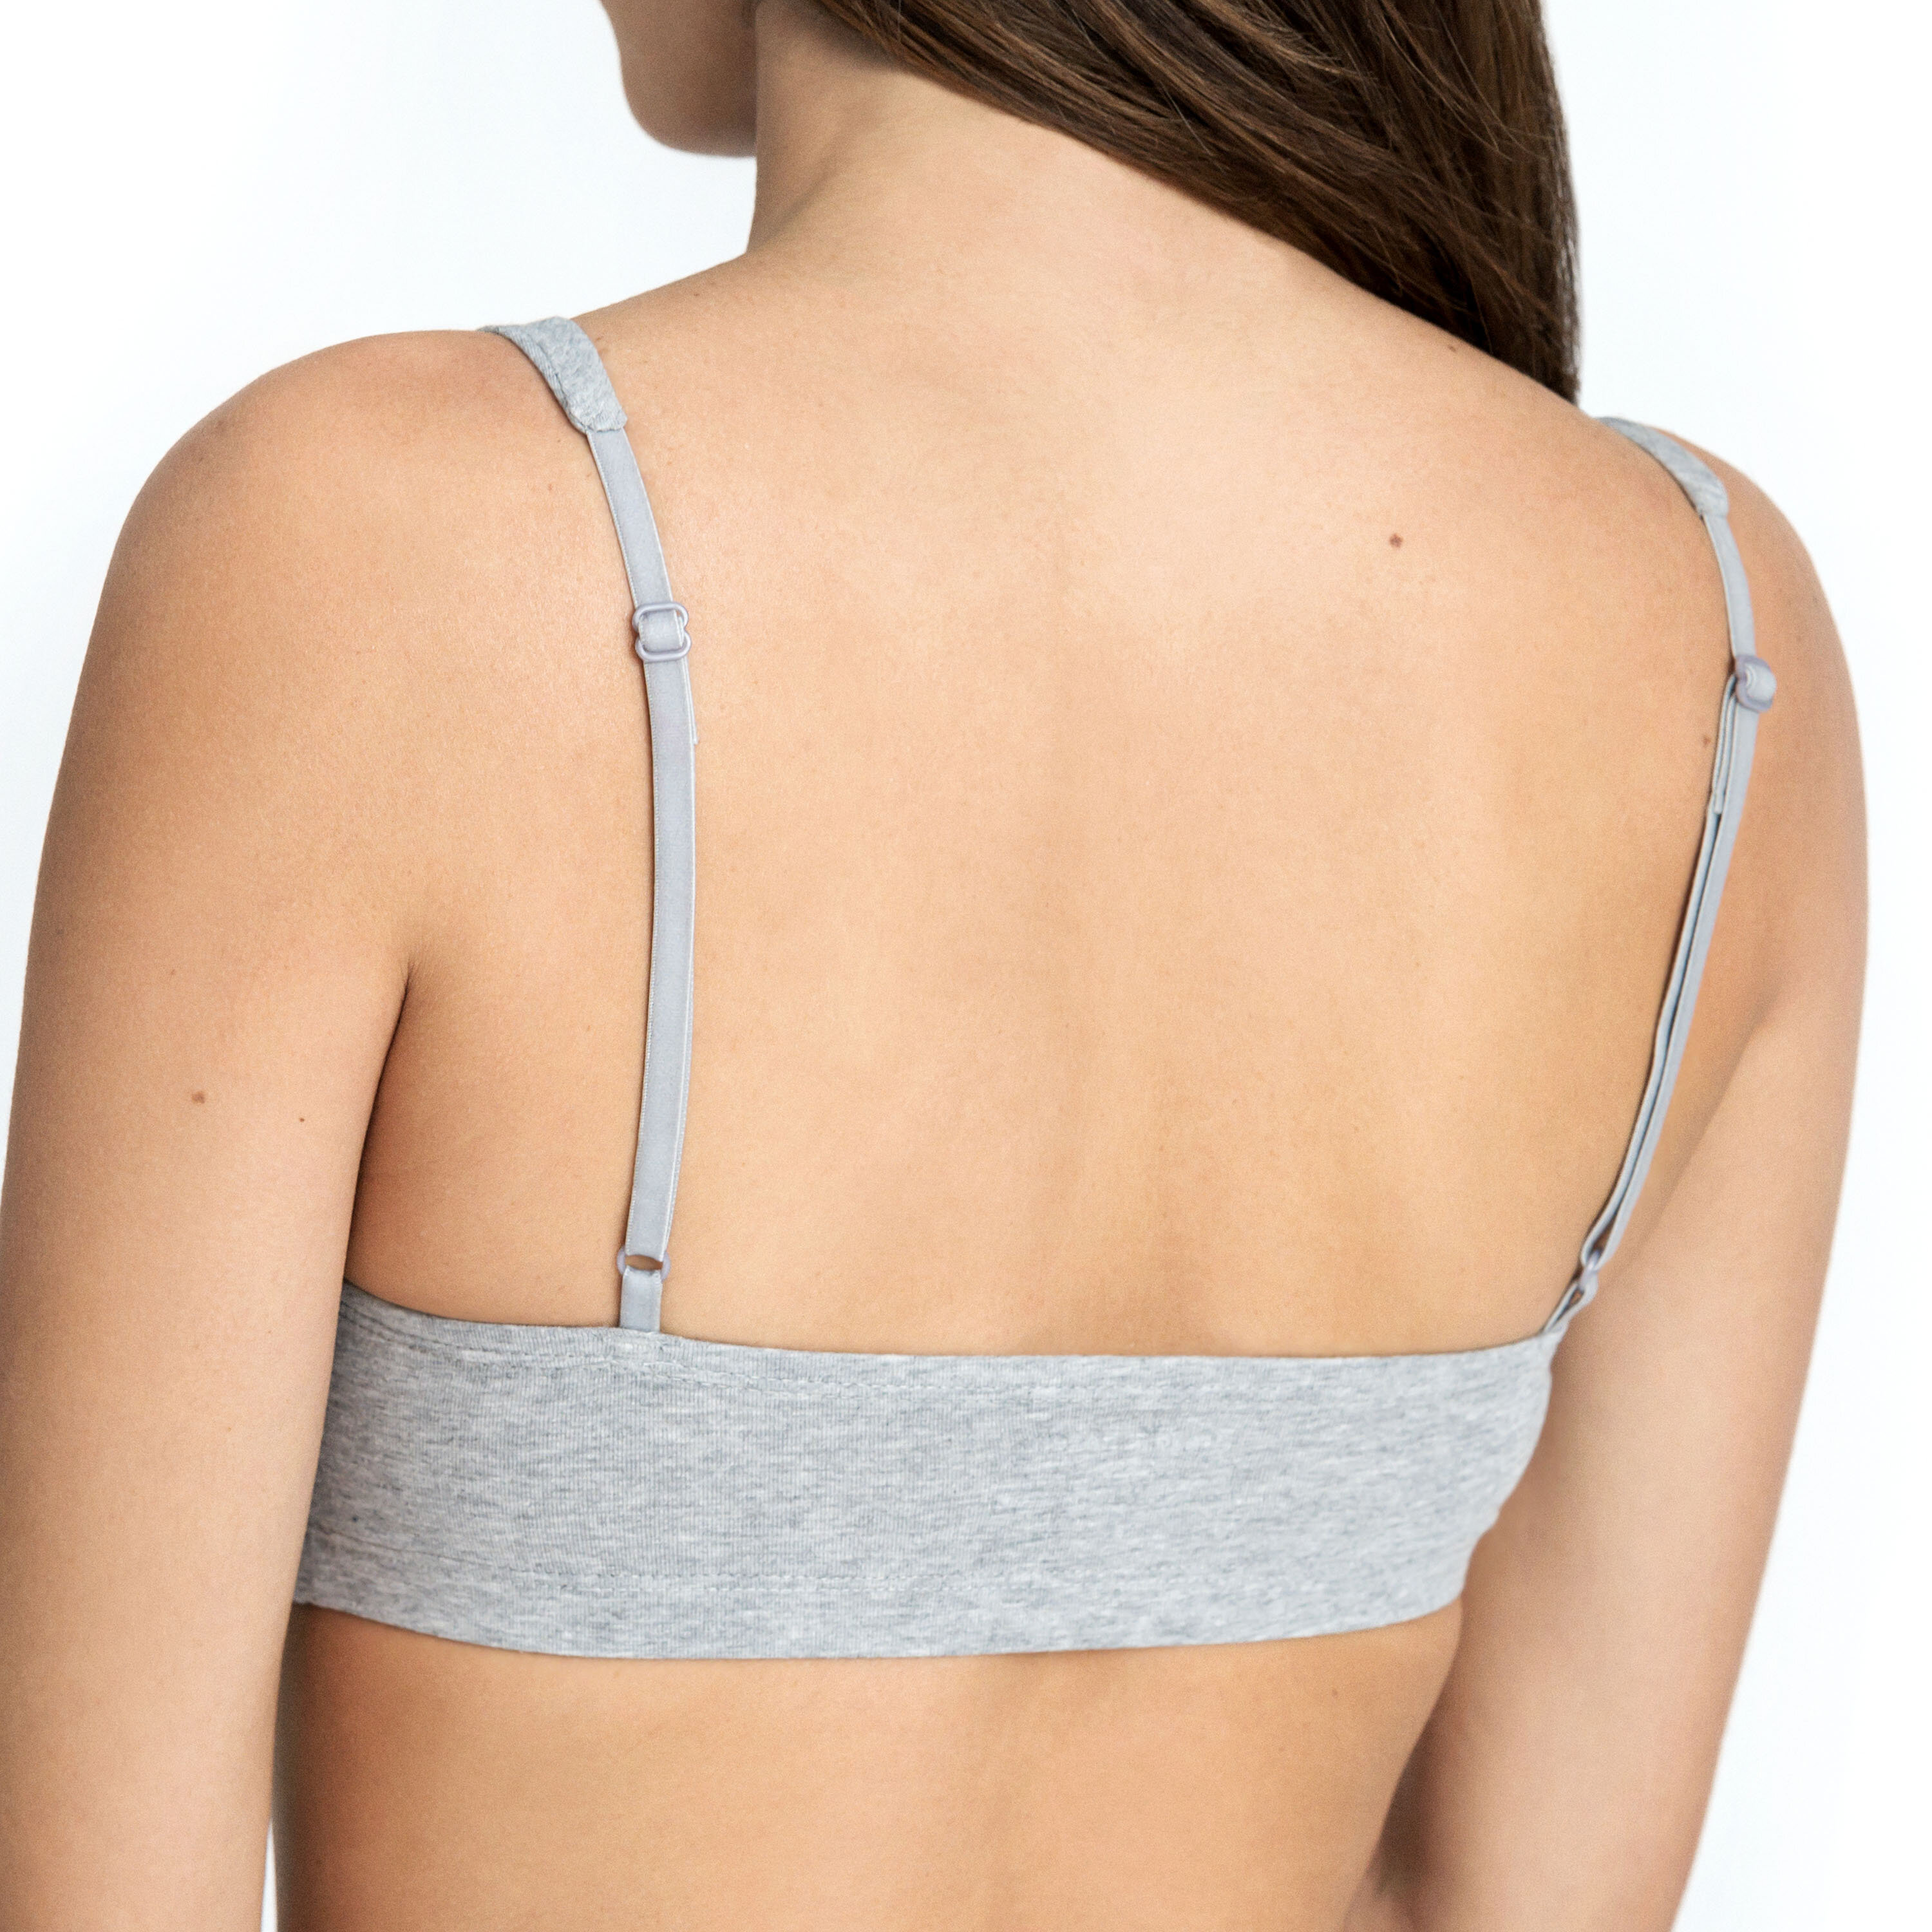 621103_Soft_Bra_grey-melange_3